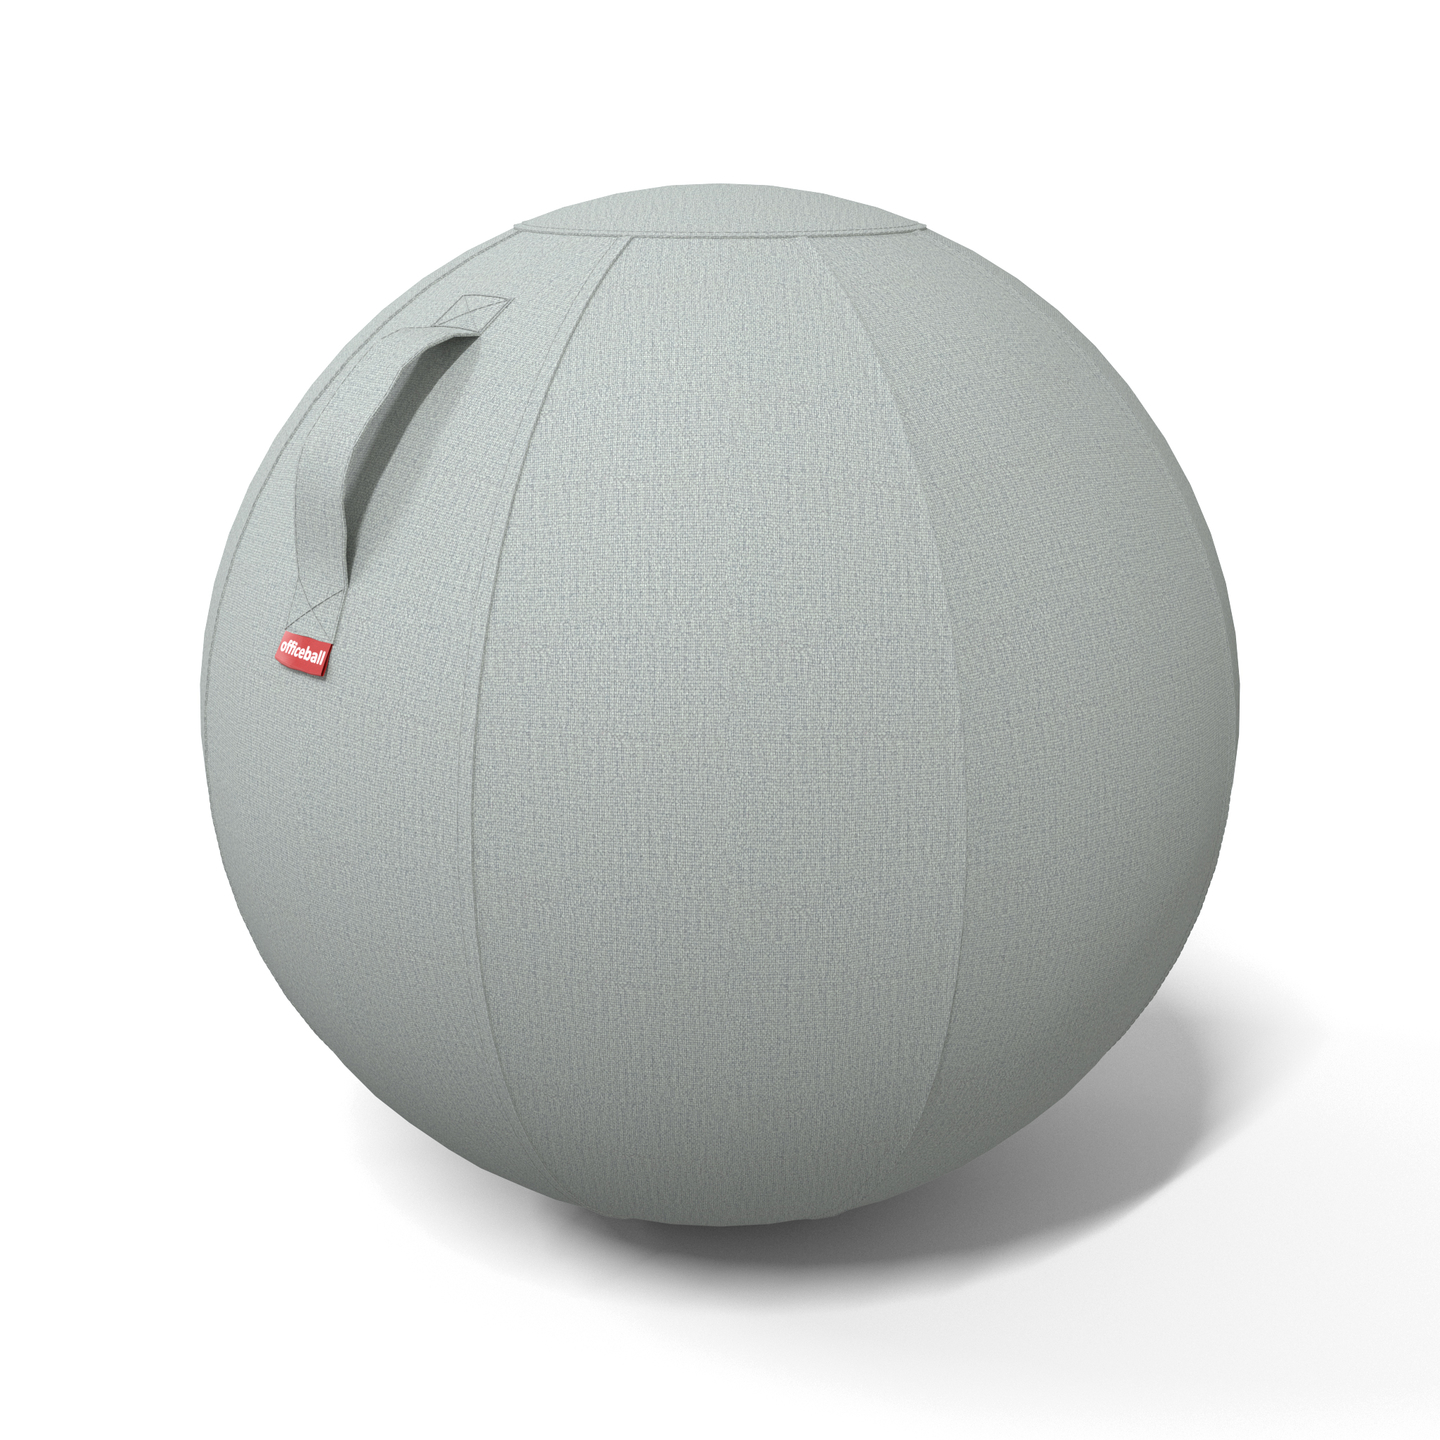 Officeball sitting ball | choose a healthy workplace visit Worktrainer.nl